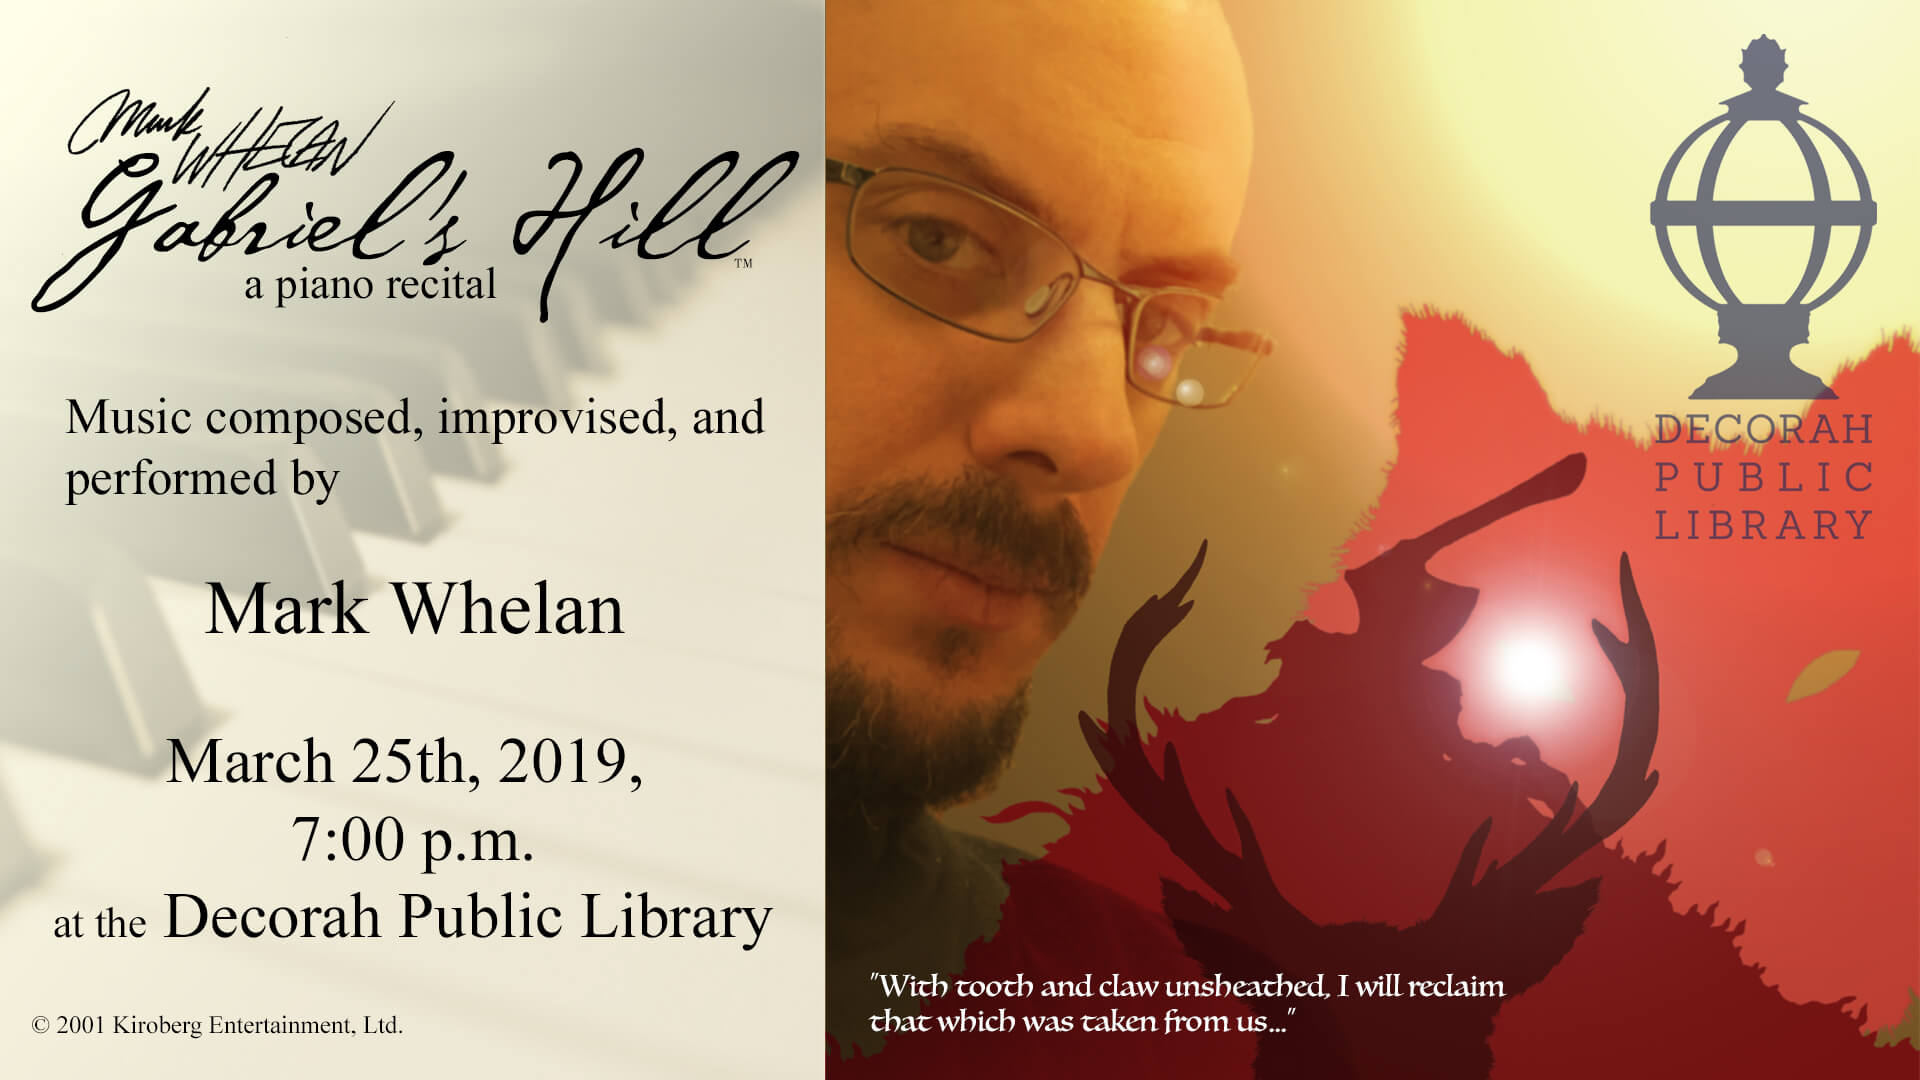 Mark Whelan Piano Recital March 25th 7 PM